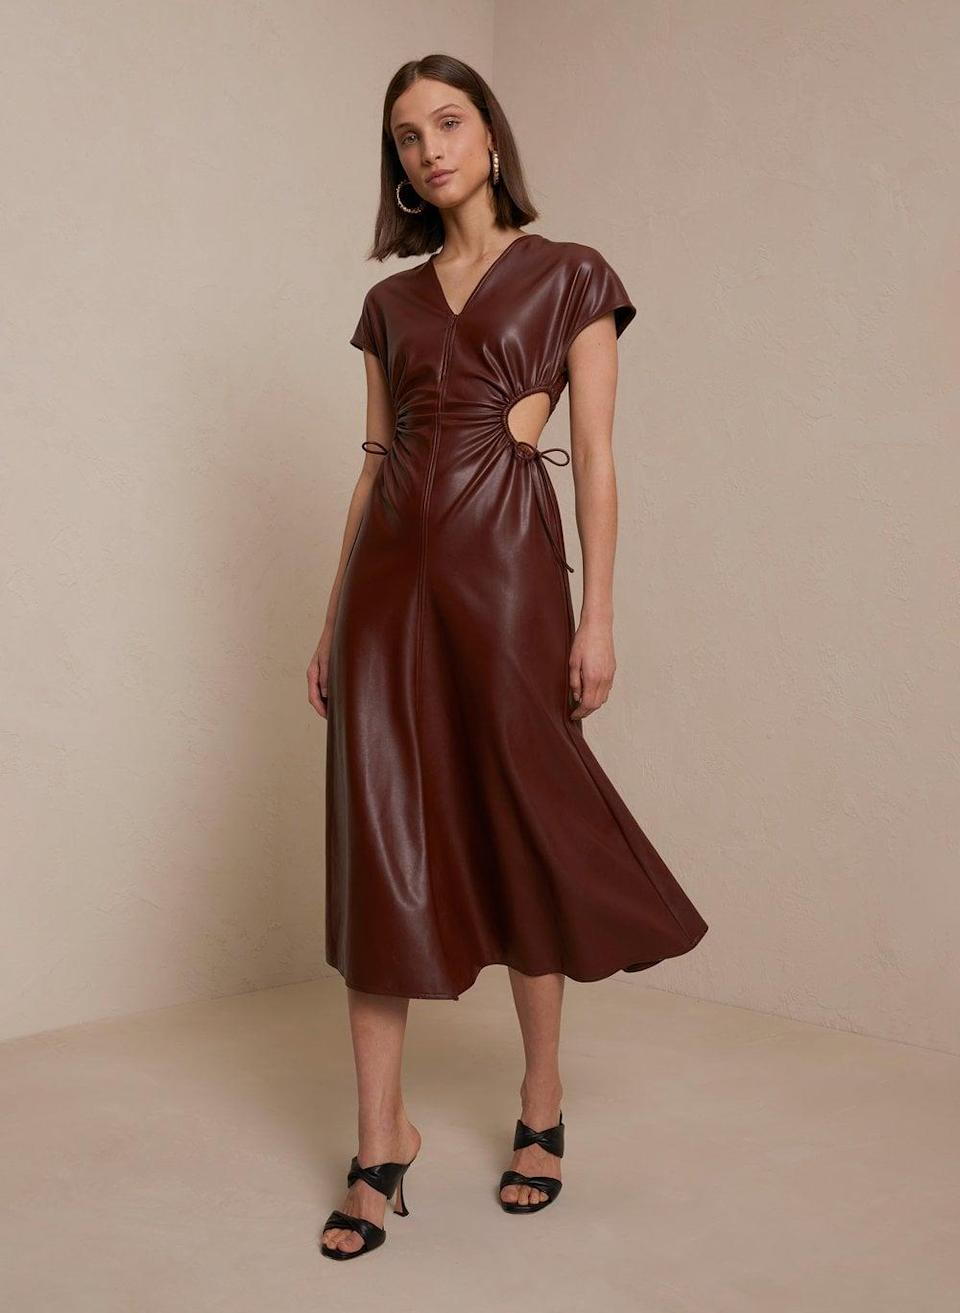 <p>This <span>Syna Vegan Leather Dress</span> ($650) is currently high on my wish list, because it looks luxe and extremely elegant. I love the side cutouts and the short-sleeve silhouette. </p>